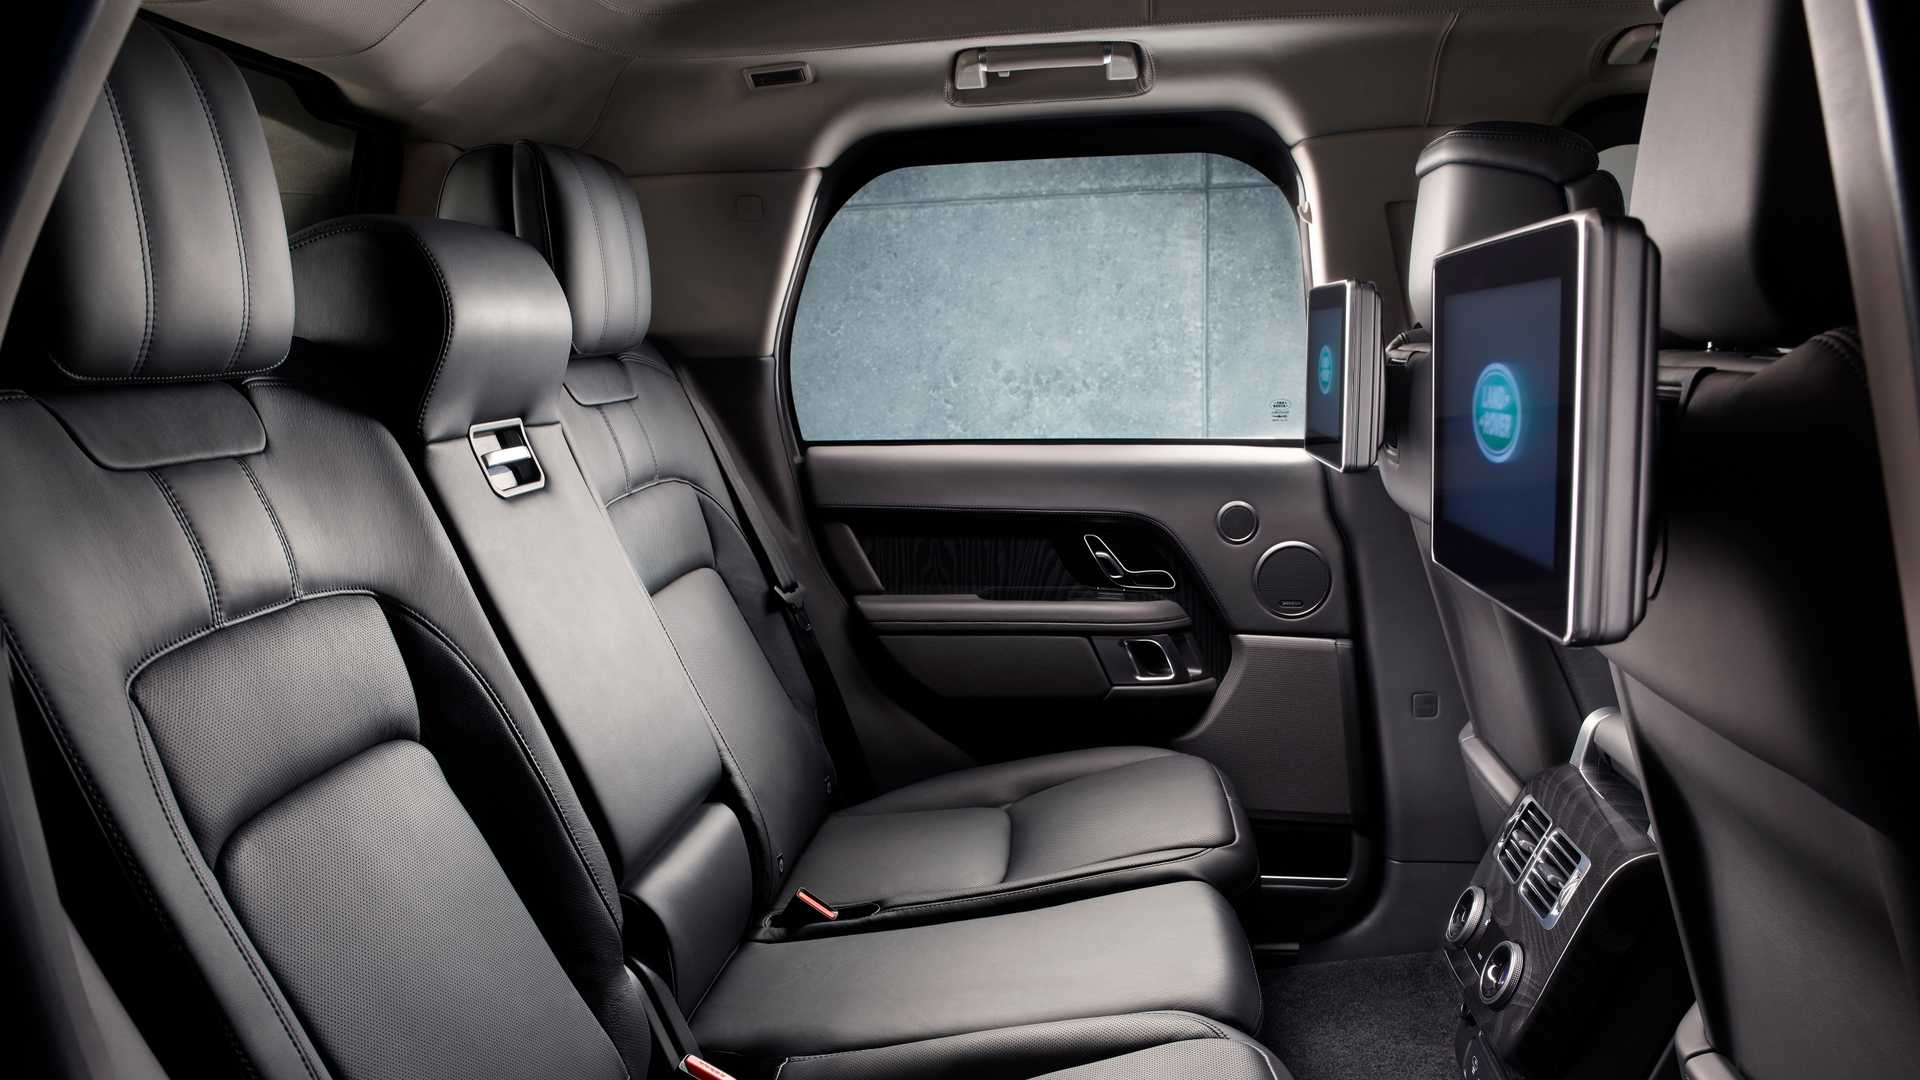 2019 Range Rover Sentinel Armored Vehicle Interior Wallpapers (9)